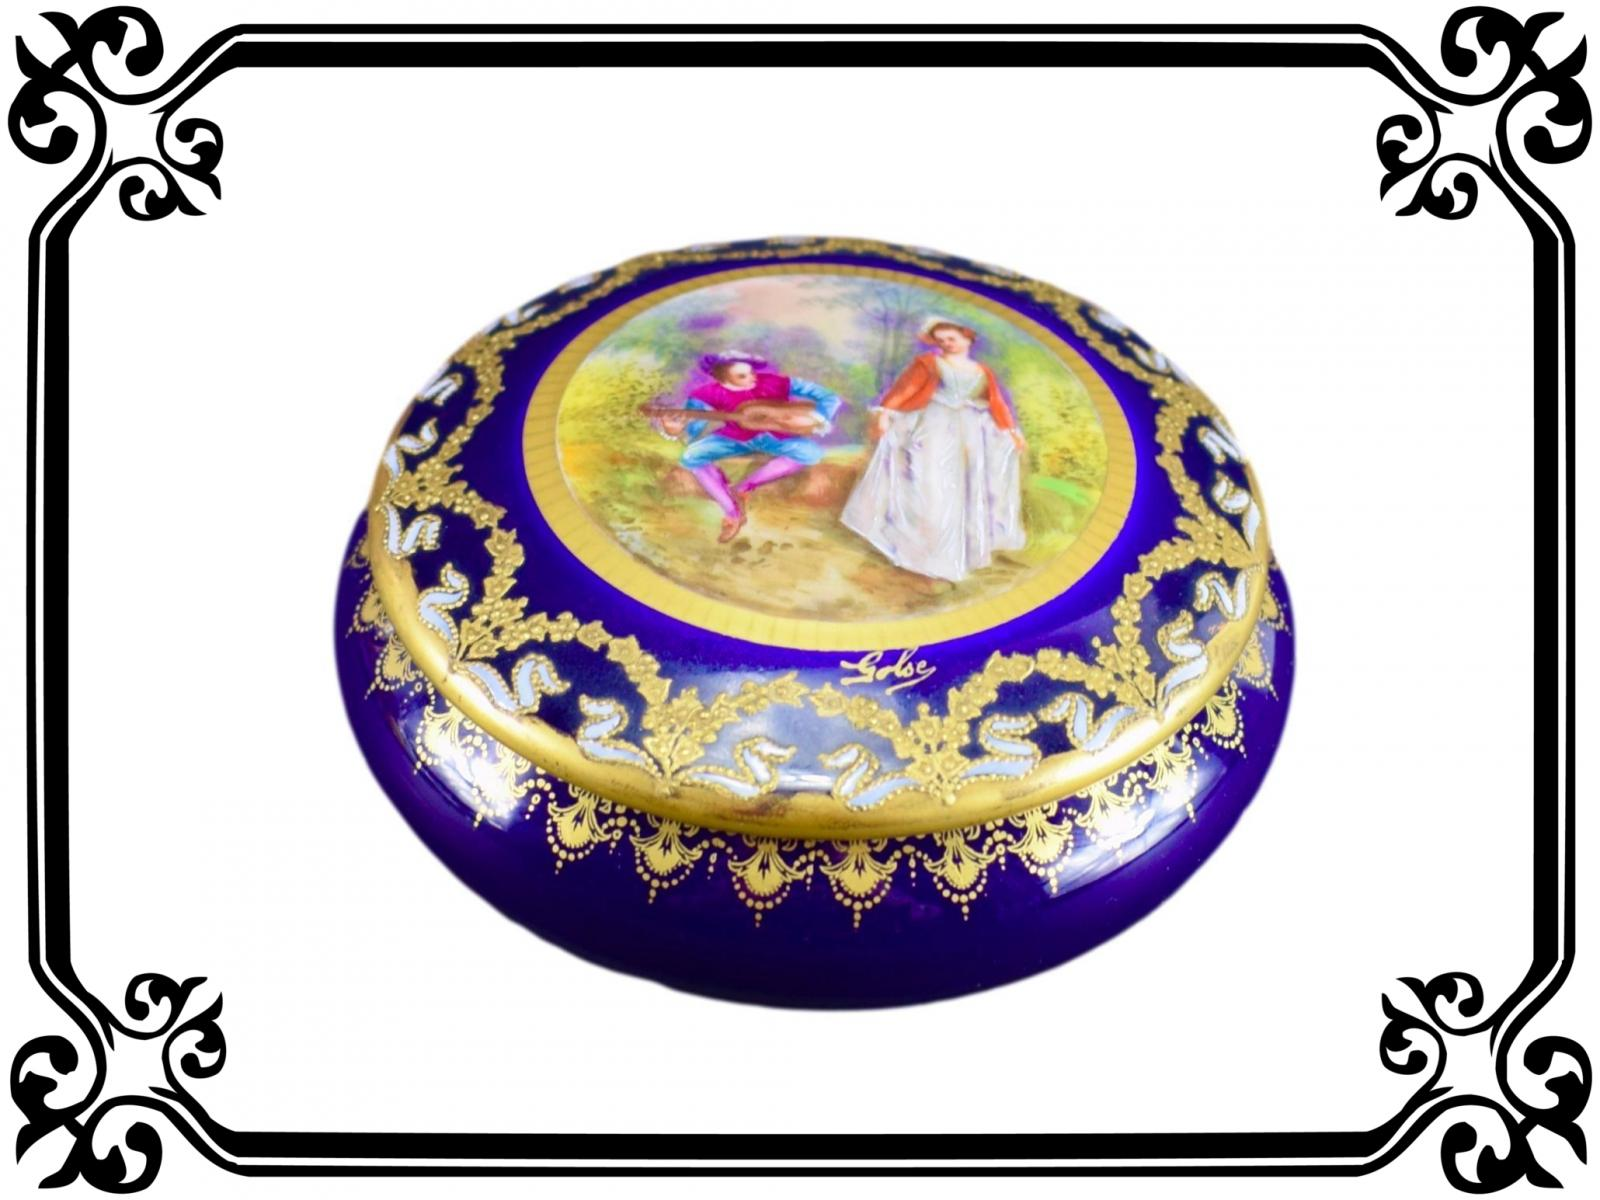 French Vintage Hand Painted Porcelain Box